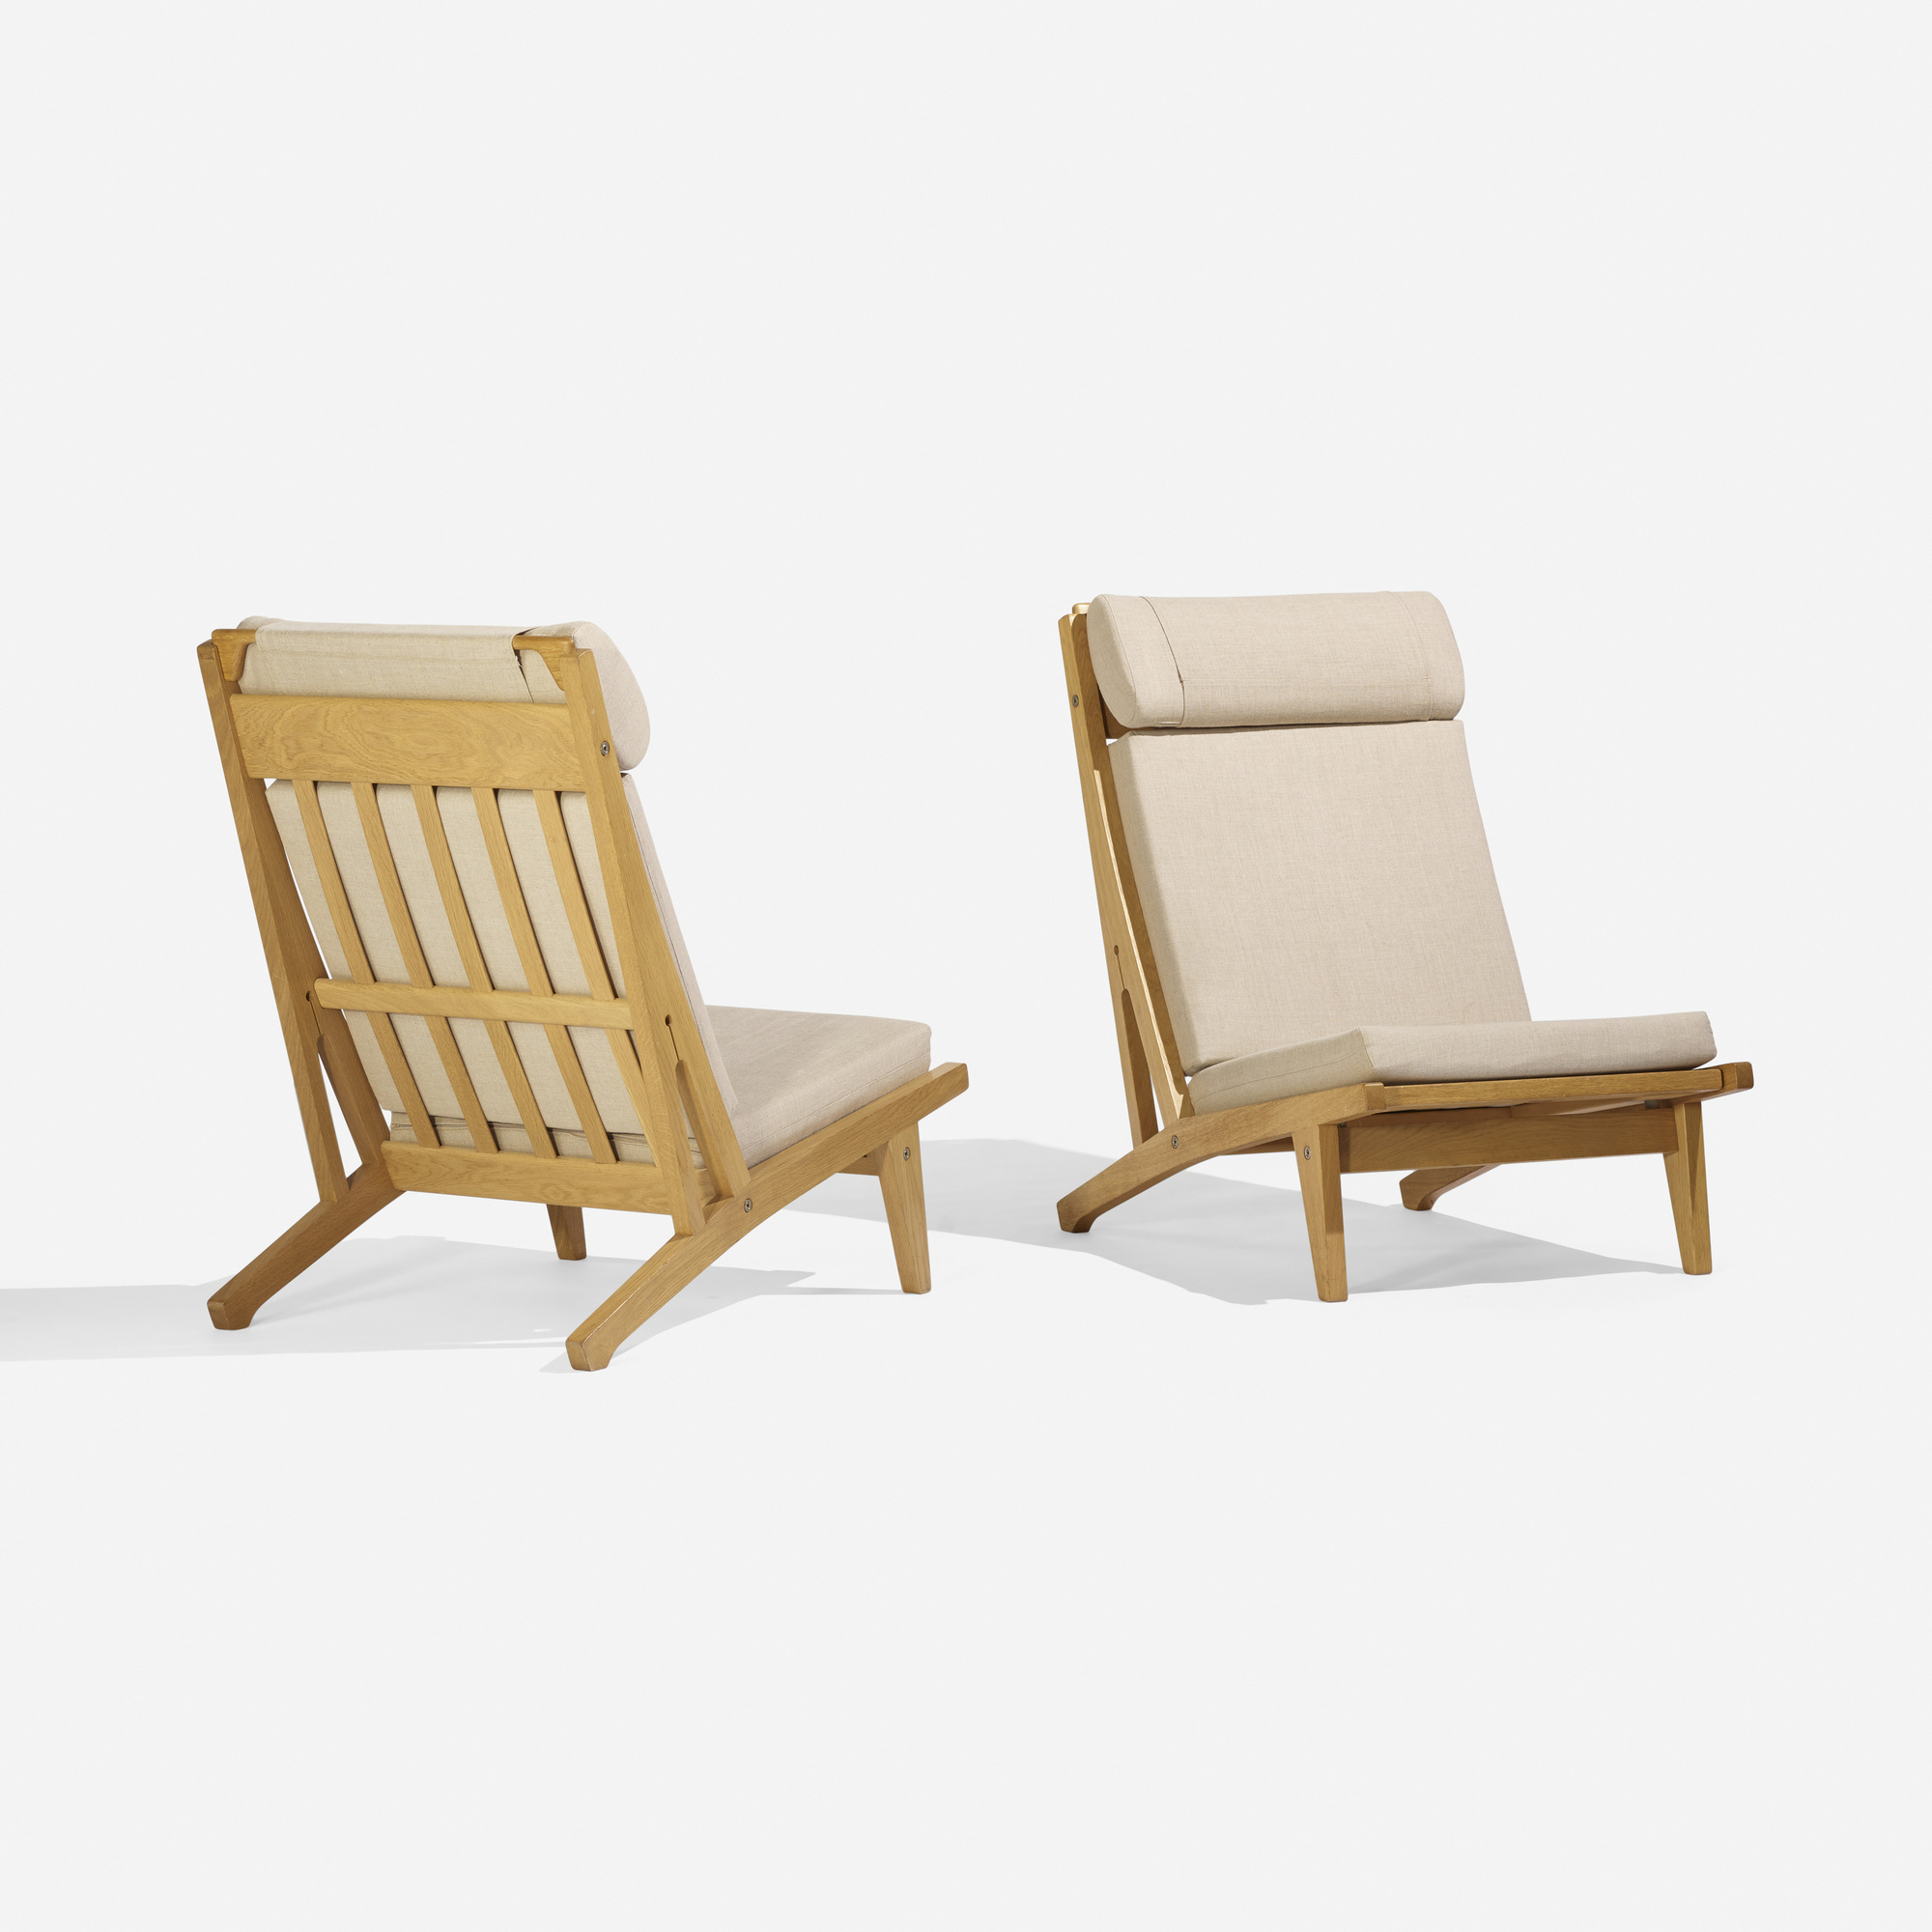 270: Hans J. Wegner / lounge chairs model GE375, pair (1 of 3)